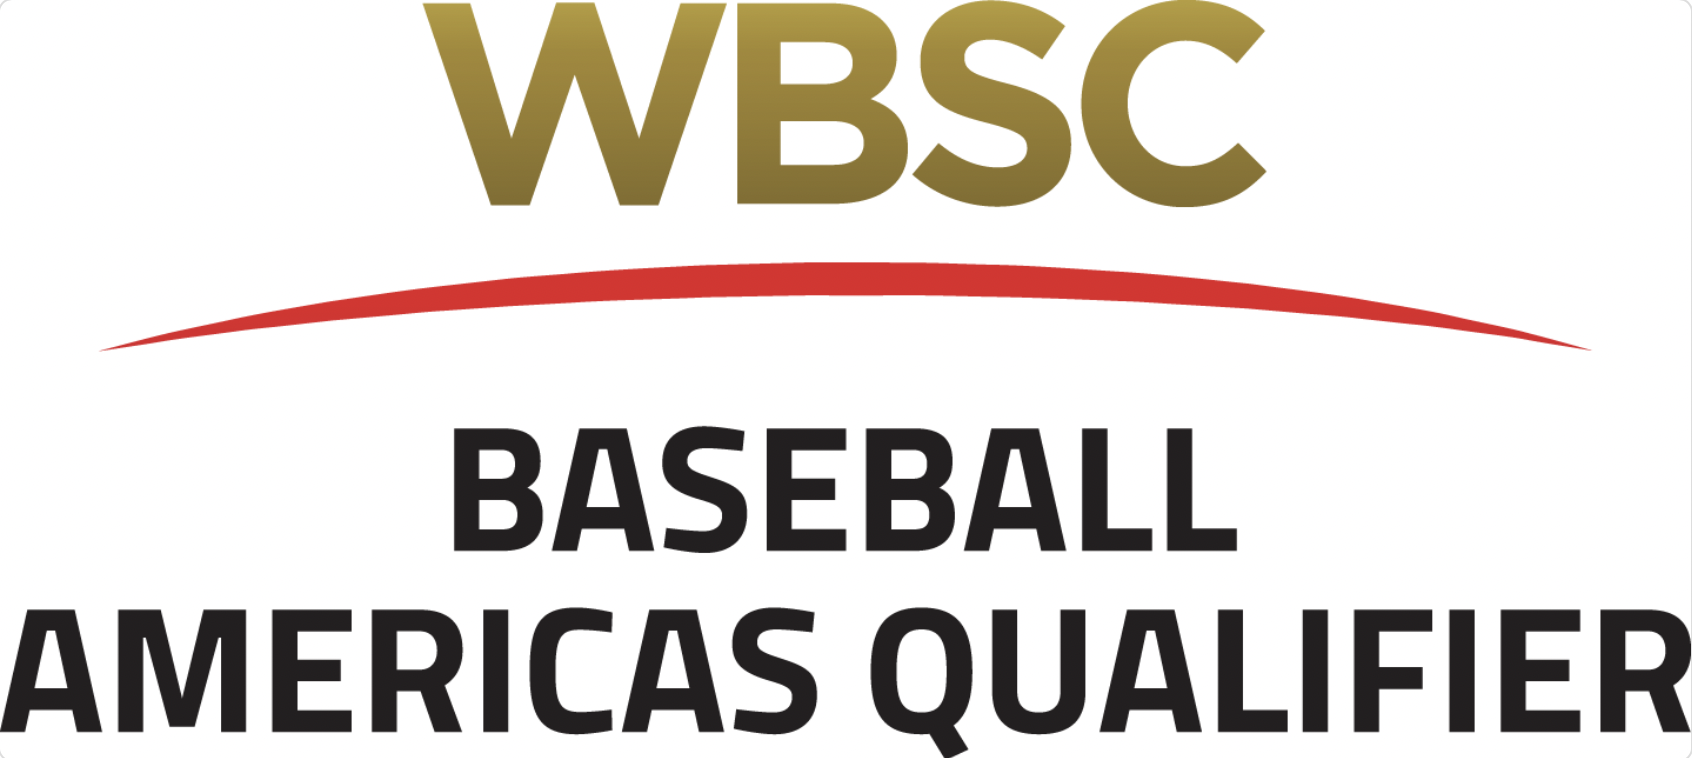 Dates, locations set for WBSC Baseball Americas Qualifier